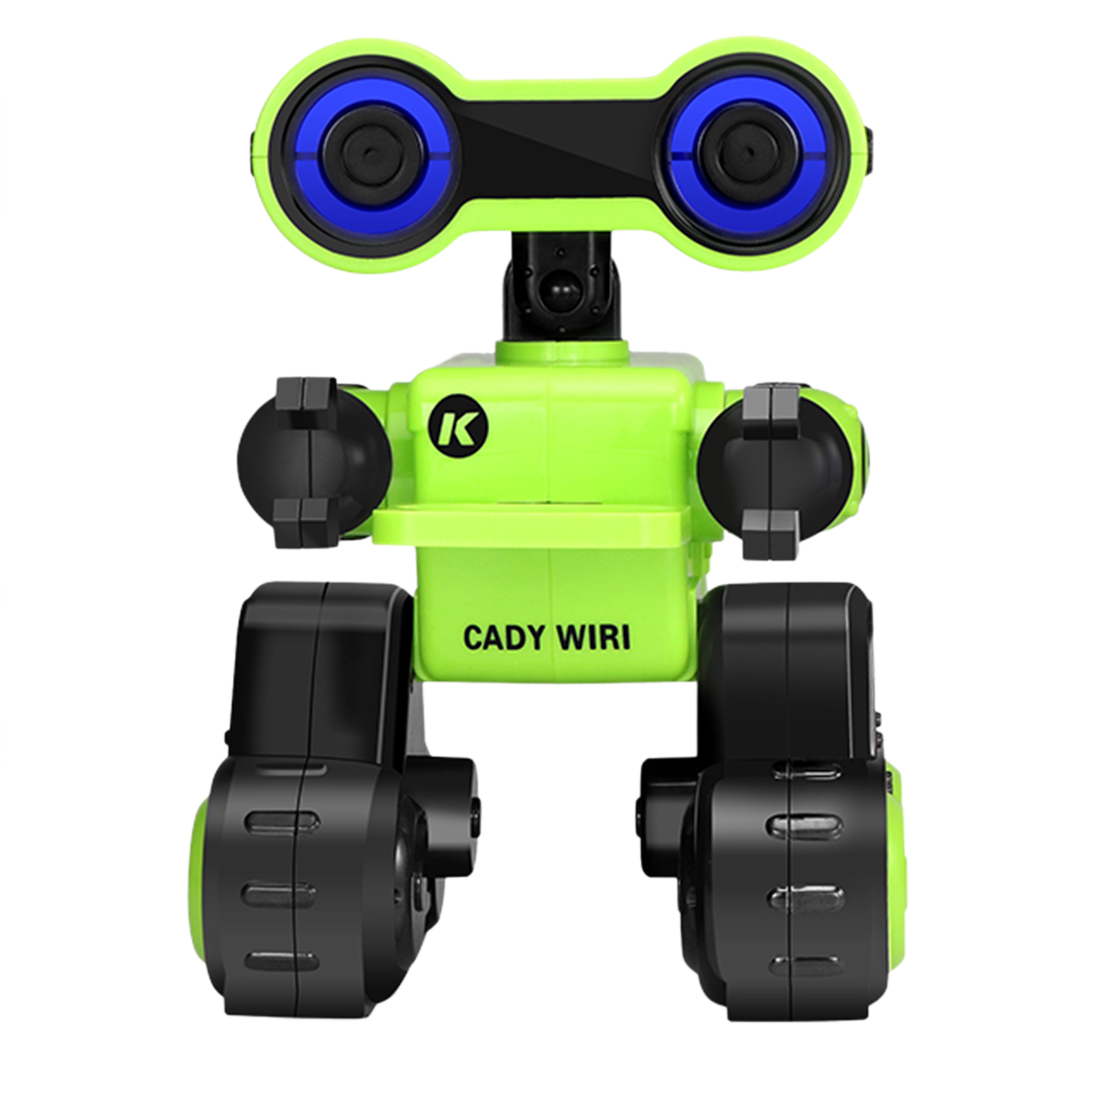 New Arrival 1 Pcs Intelligent Programming Robot With Singing Dancing Voice Chat Light Control Functions - Green